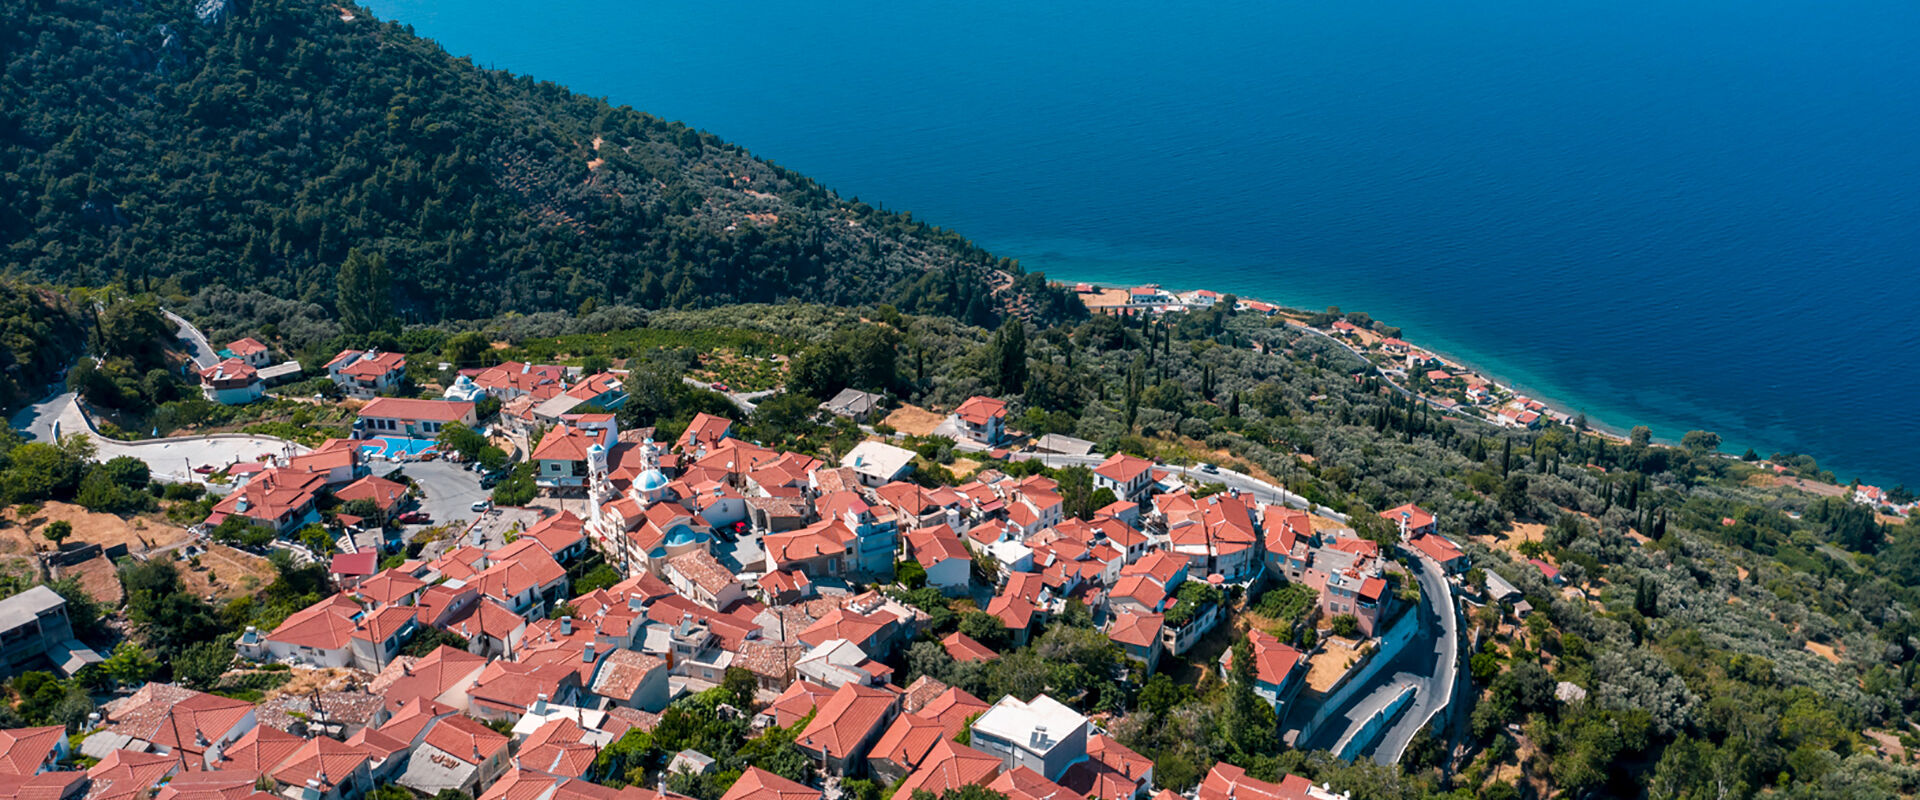 Birds eye view of Ampelos village with great view of Aegean